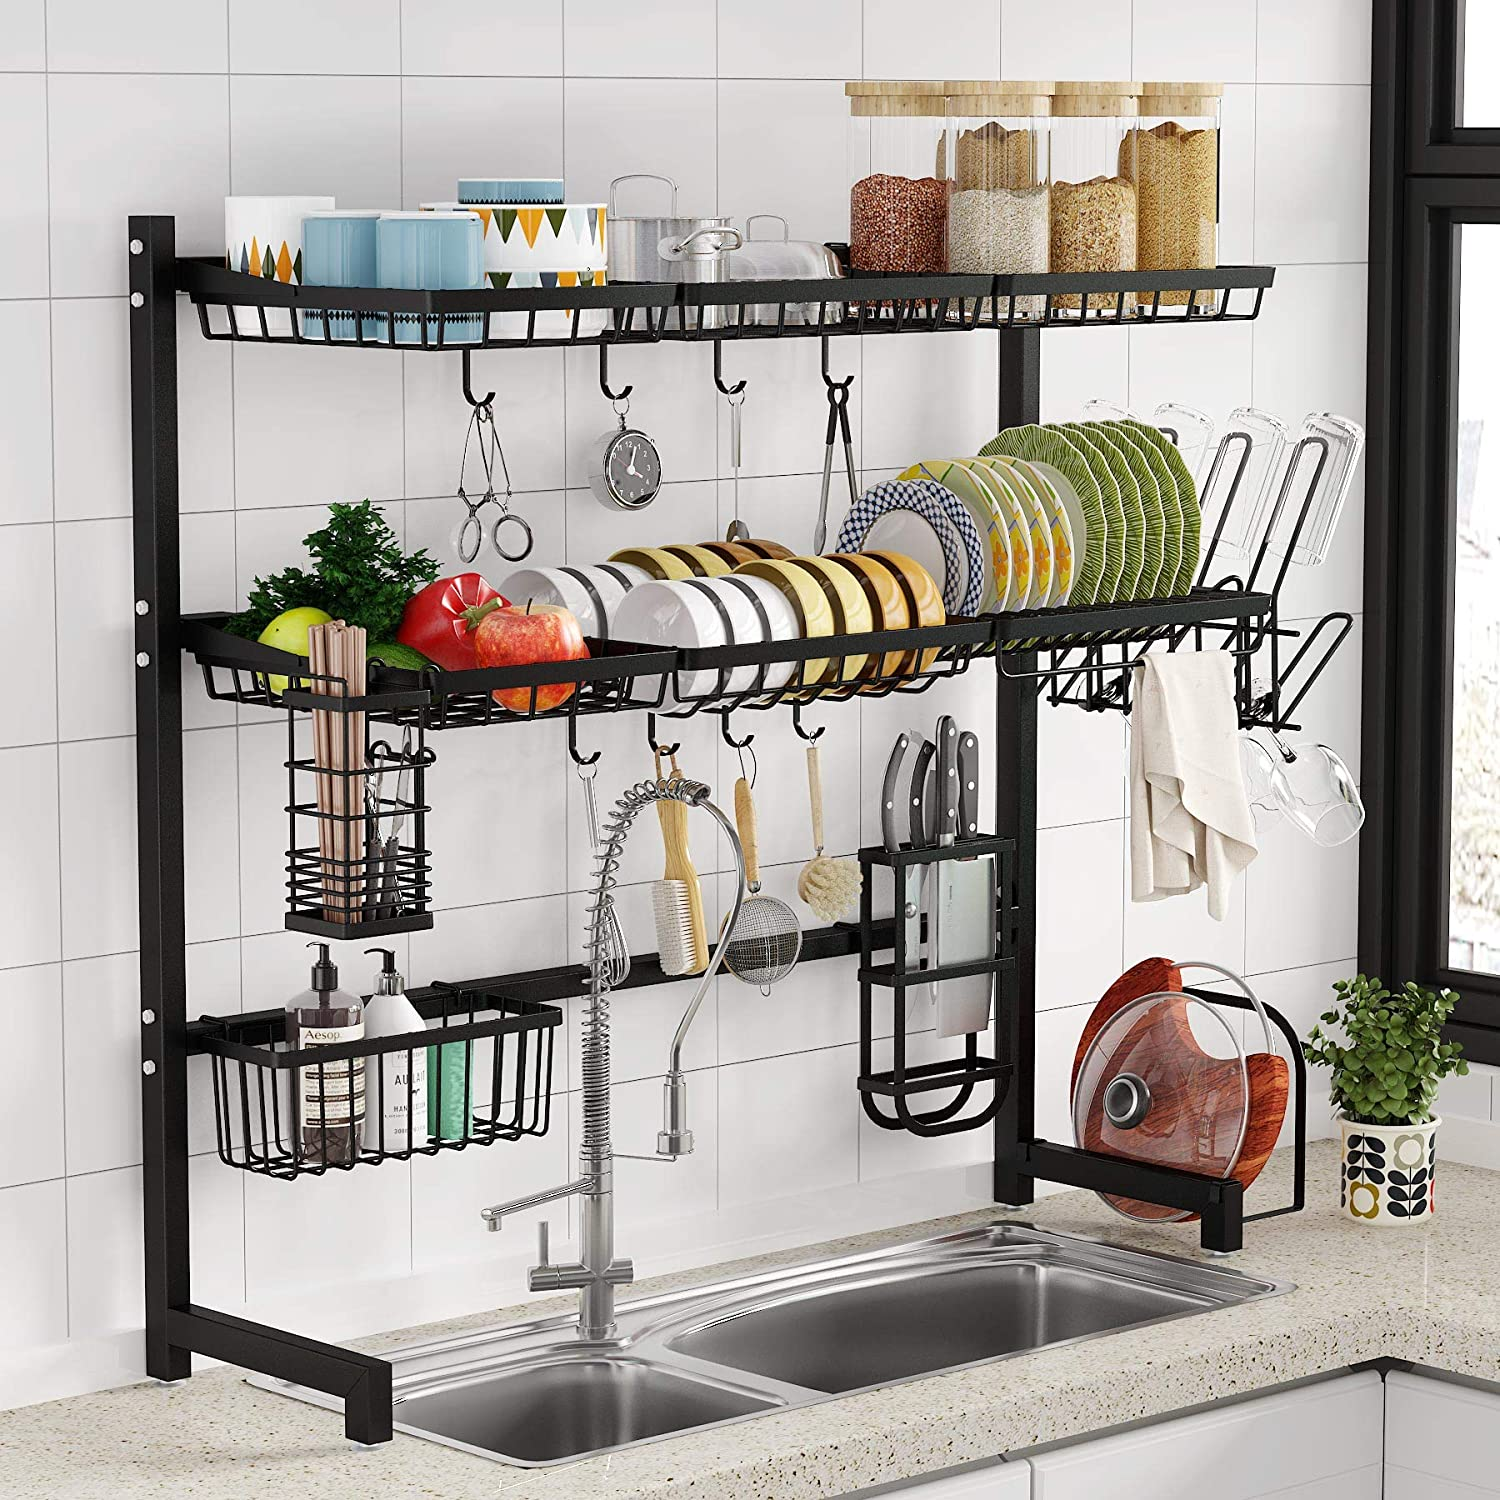 1Easylife 3 Tier Stainless Steel Large Kitchen Rack Dish Drainers